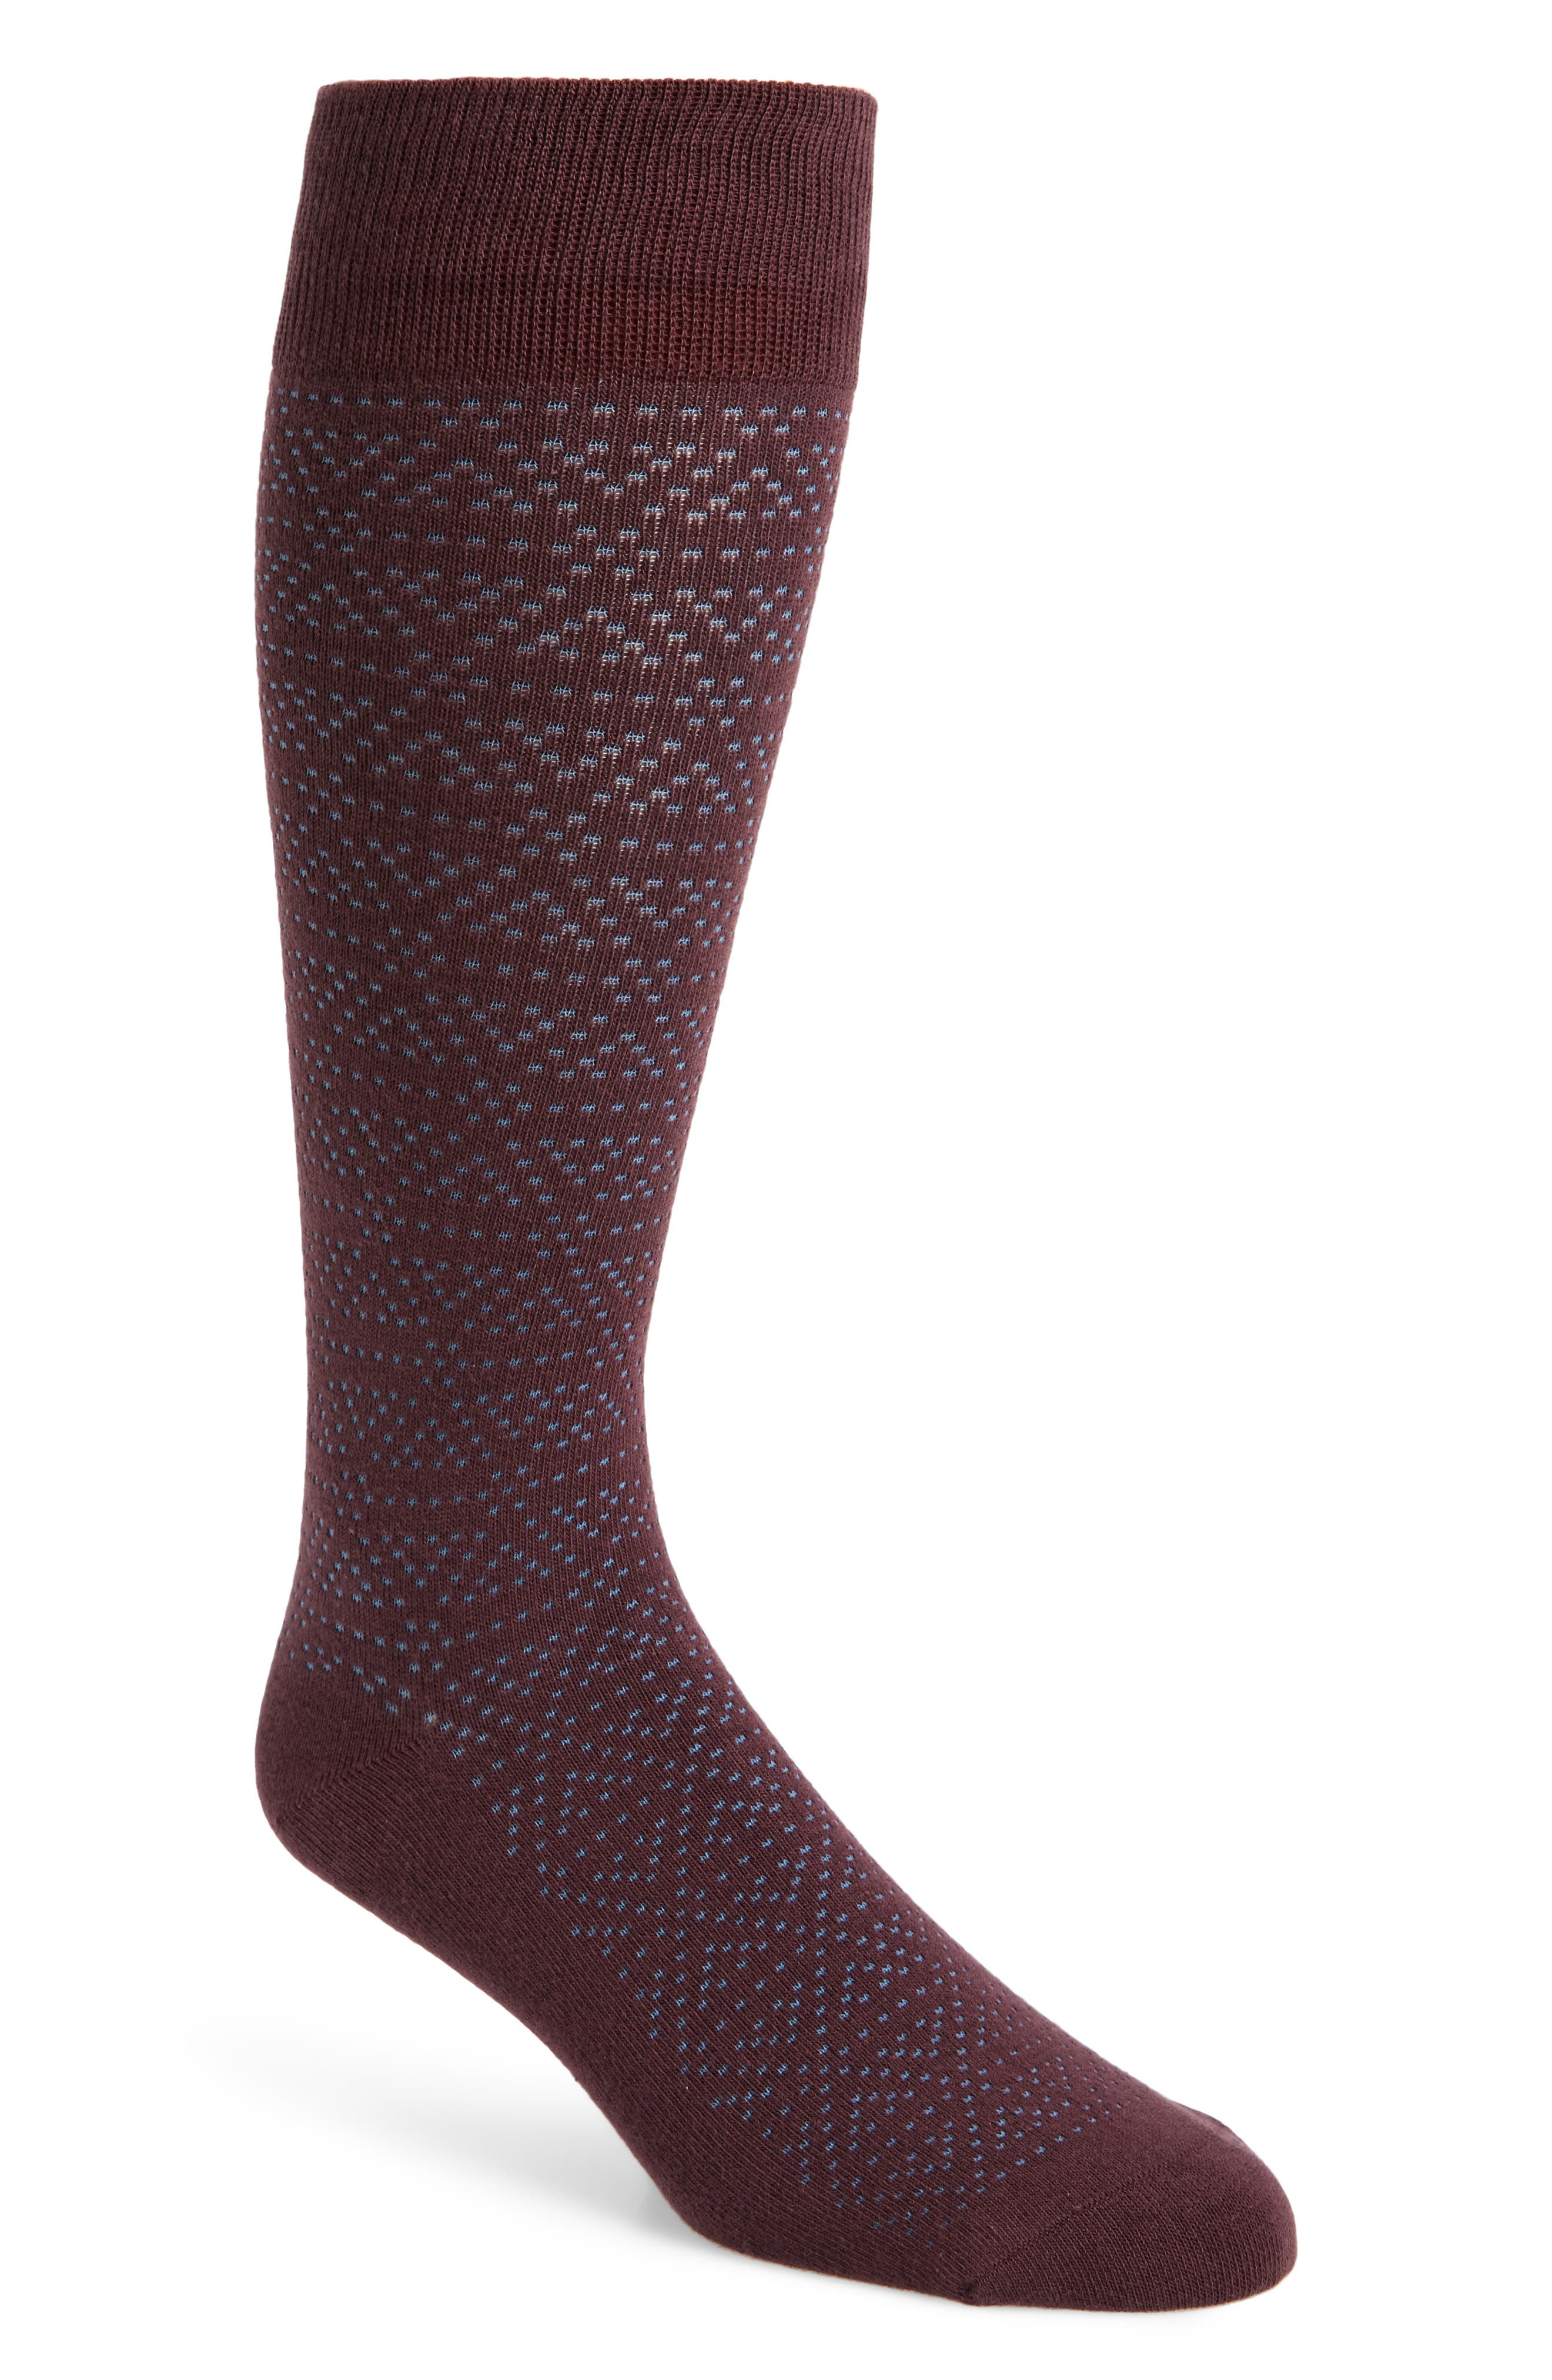 Plaited Triangle Socks,                         Main,                         color, Burgundy